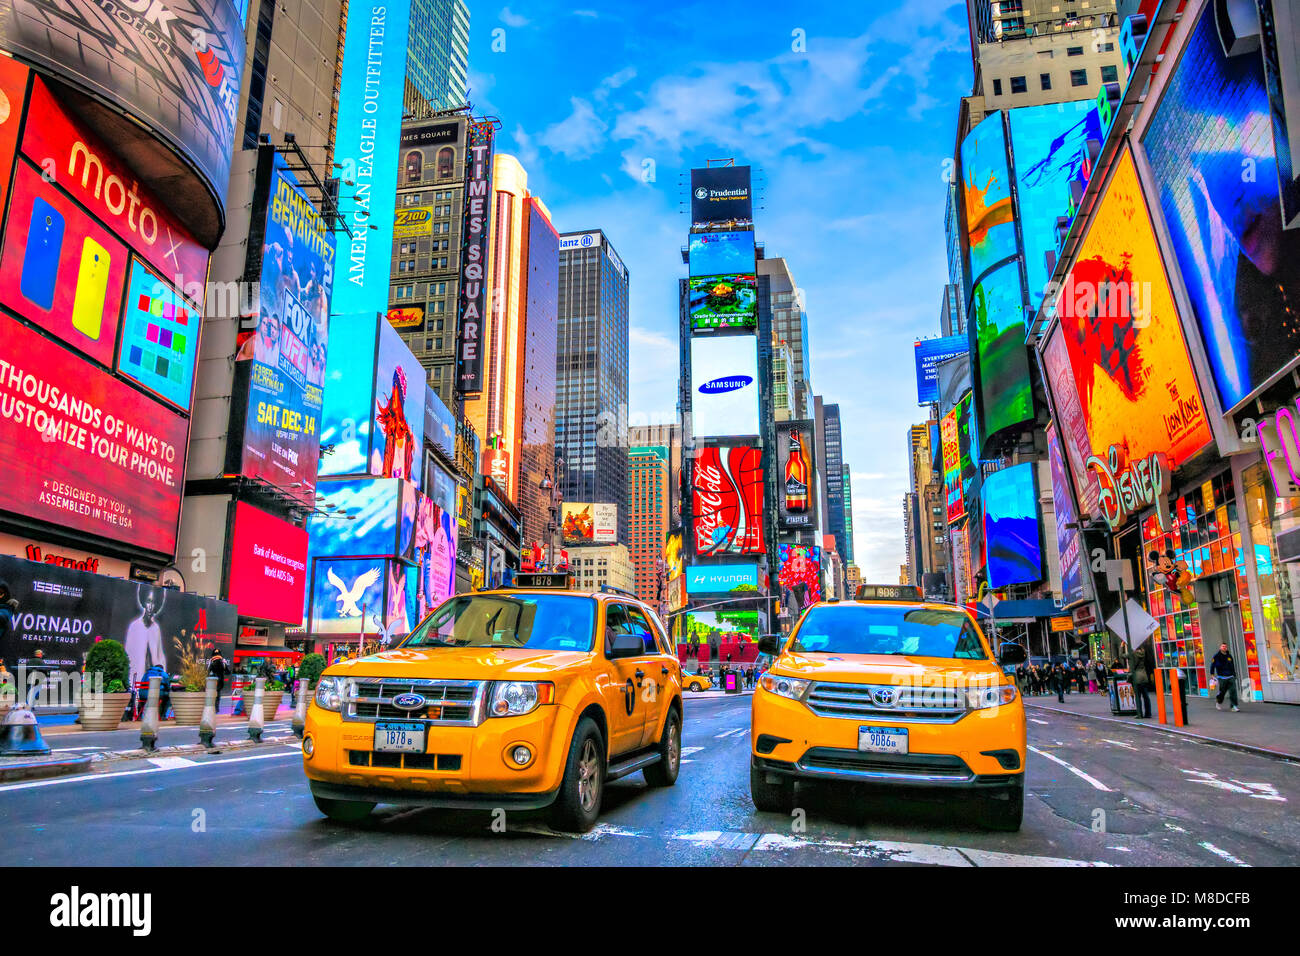 NEW YORK CITY, USA - DECEMBER 01, 2013: Times Square,is a busy tourist intersection of neon art and commerce and Stock Photo